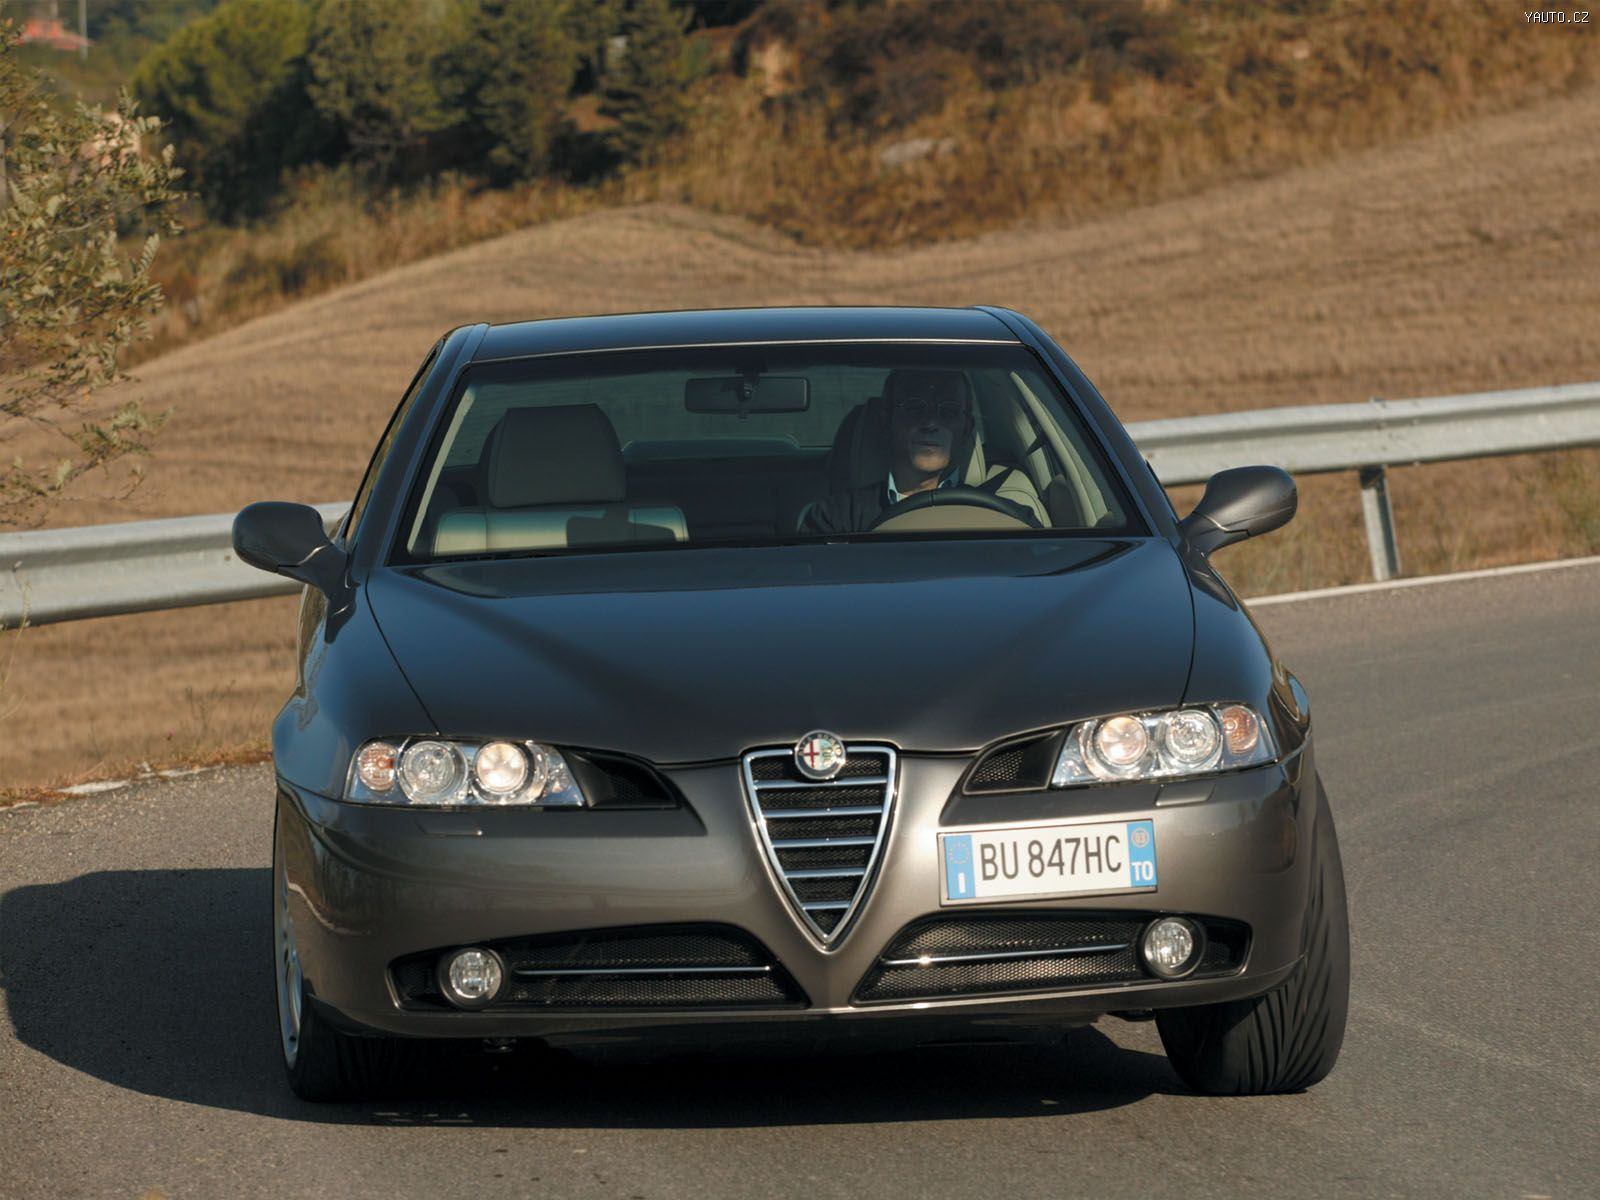 Alfa Romeo GTV Pictures posters news and videos on